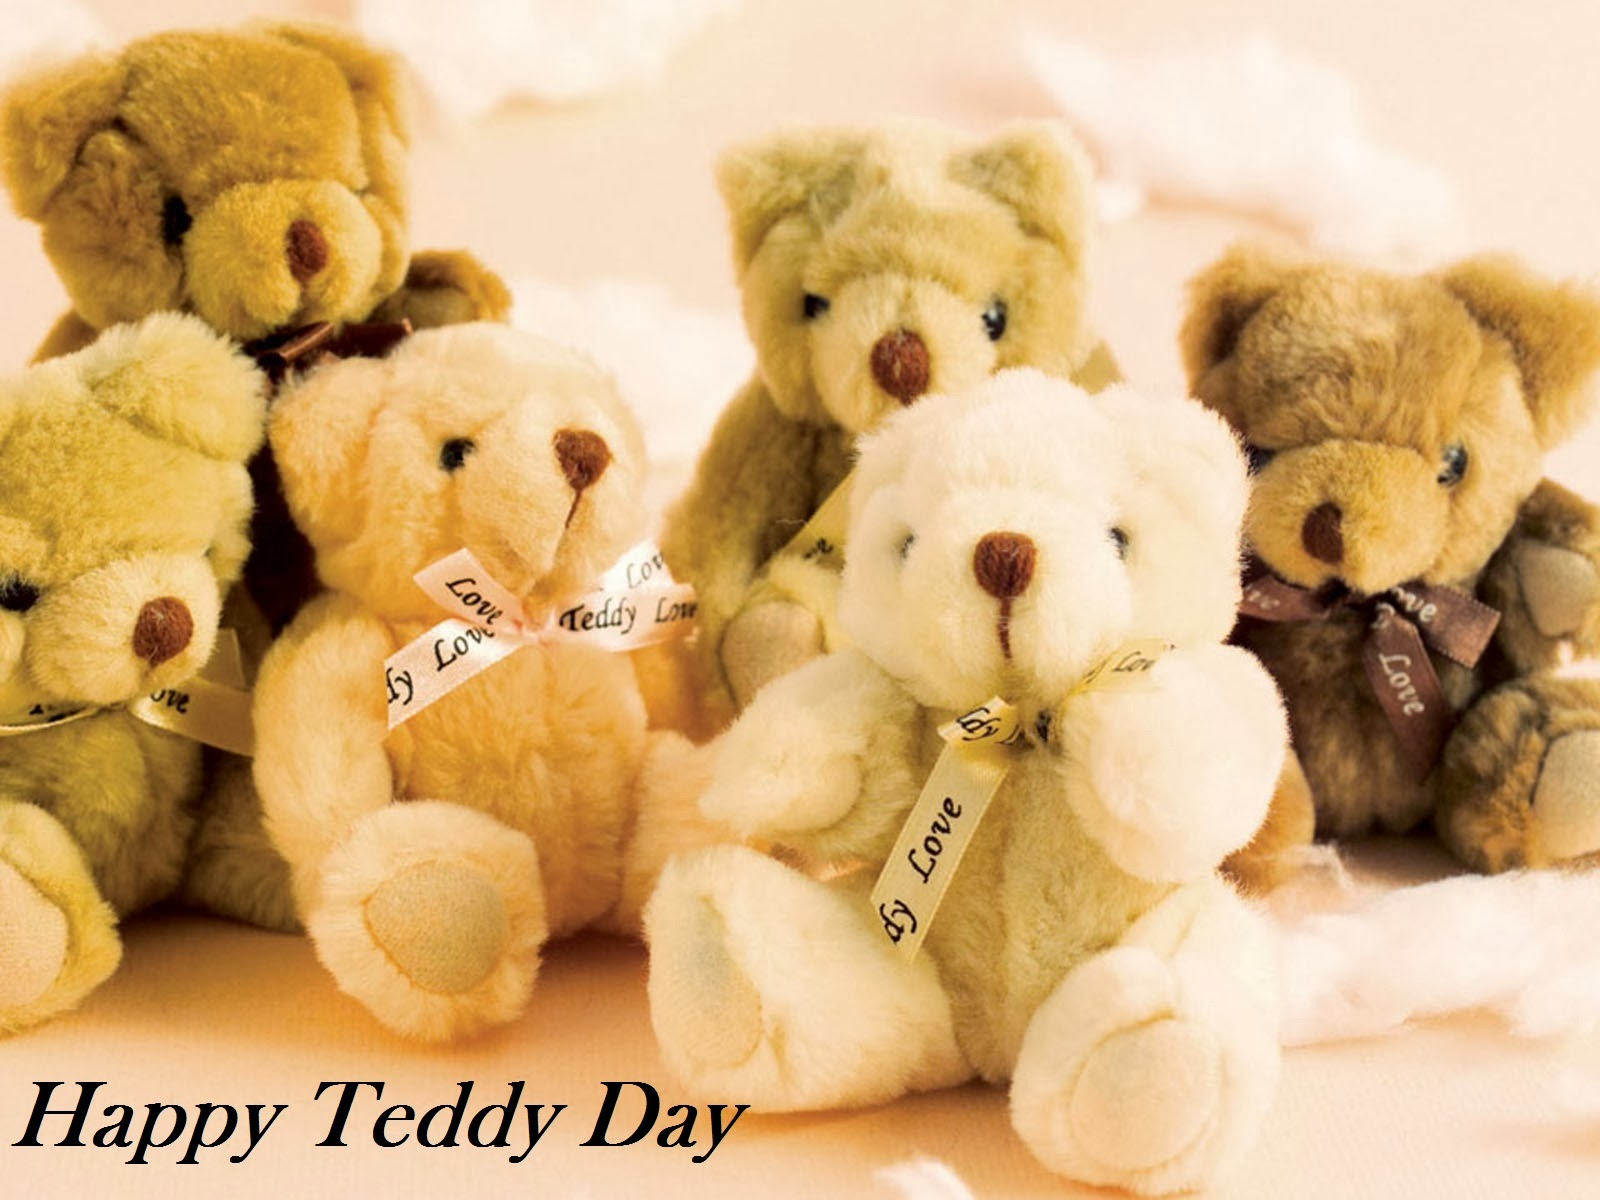 Happy teddy day 10th february 2014 hd wallpapers and images all happy teddy day 2014 hd wallpapers and images teddies altavistaventures Image collections